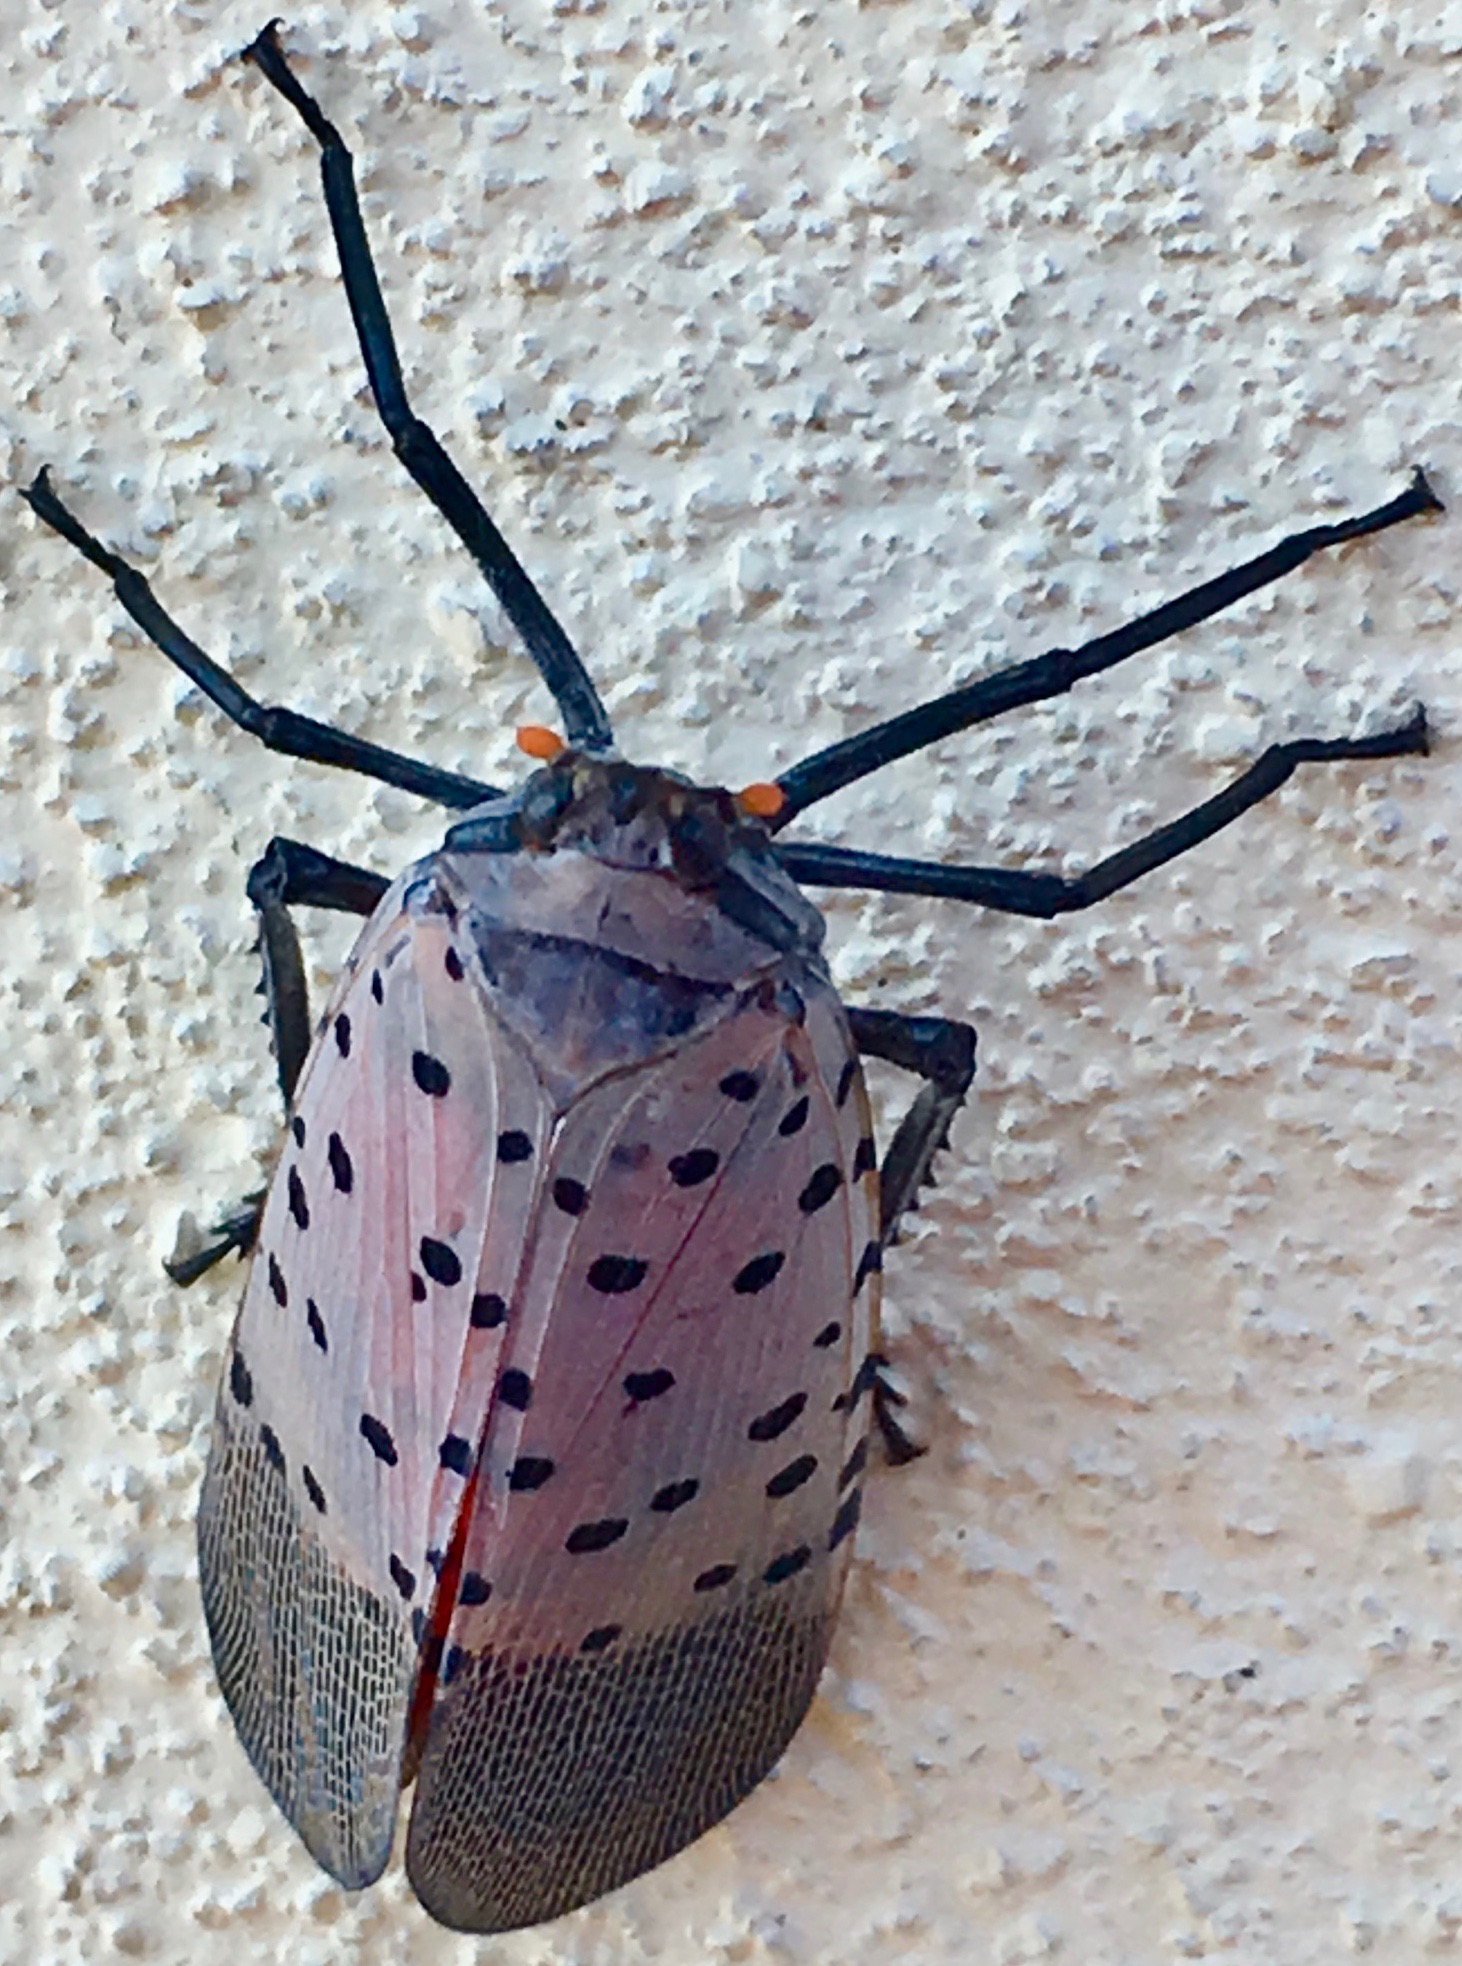 Spotted lanternfly (Lycorma delicatula)